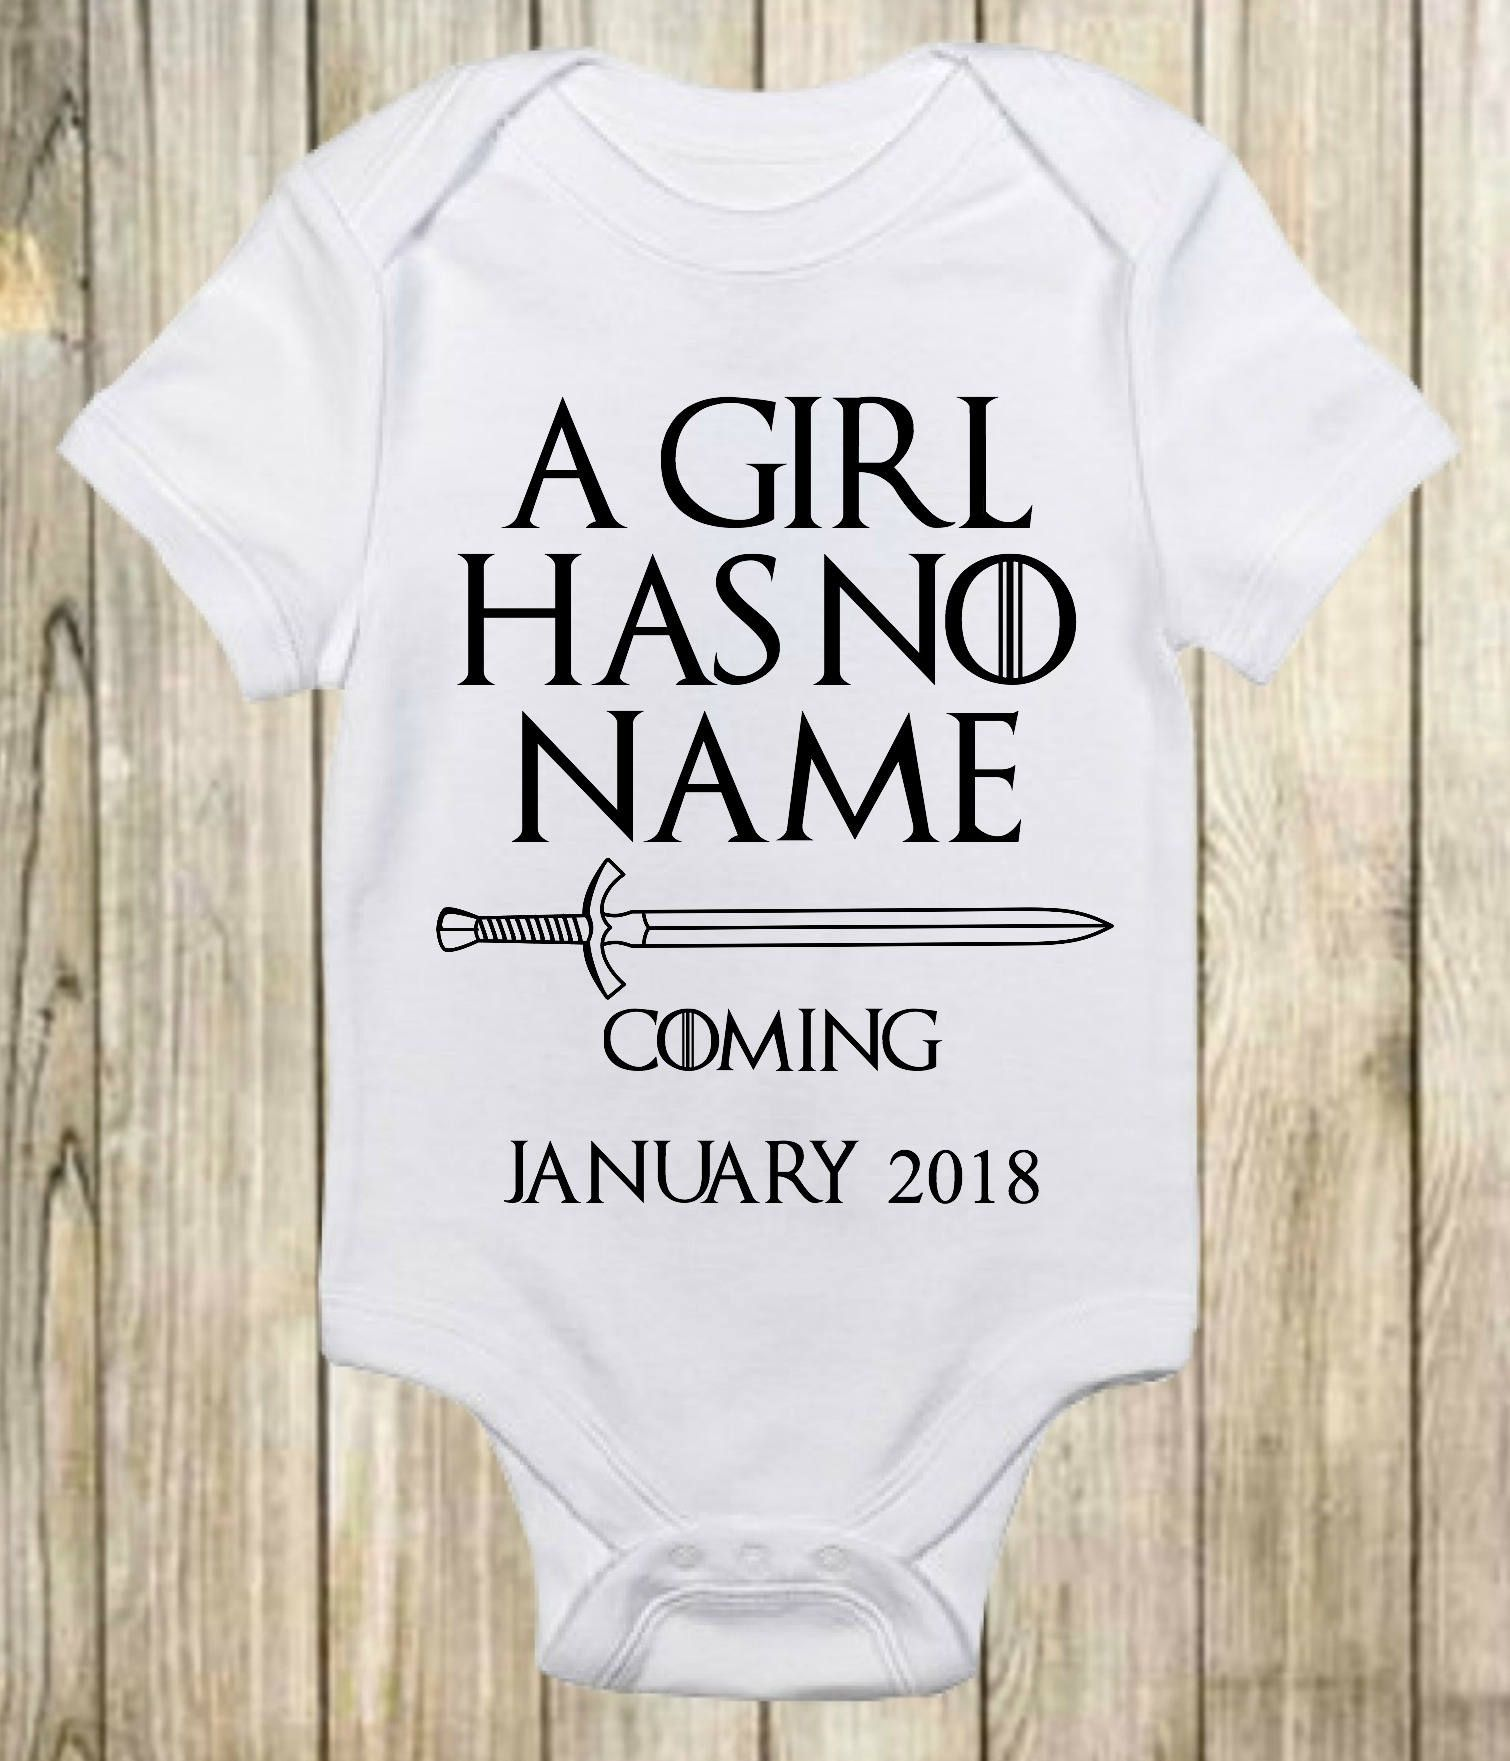 Game of Thrones Baby Has No Name Onesies unisex Baby Gifts Infant Funny Newborn